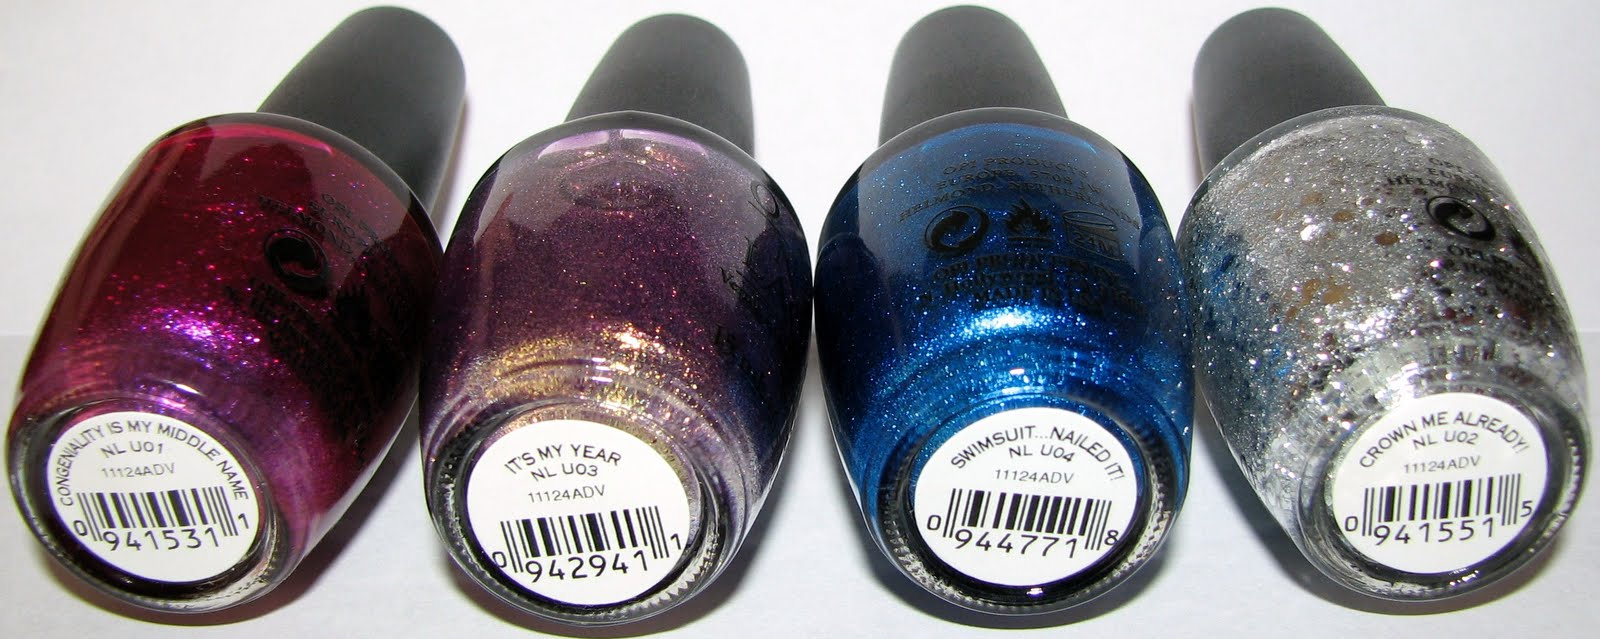 Opi Miss Universe Collection Nail Polish Swatches And Review Blushing Noir